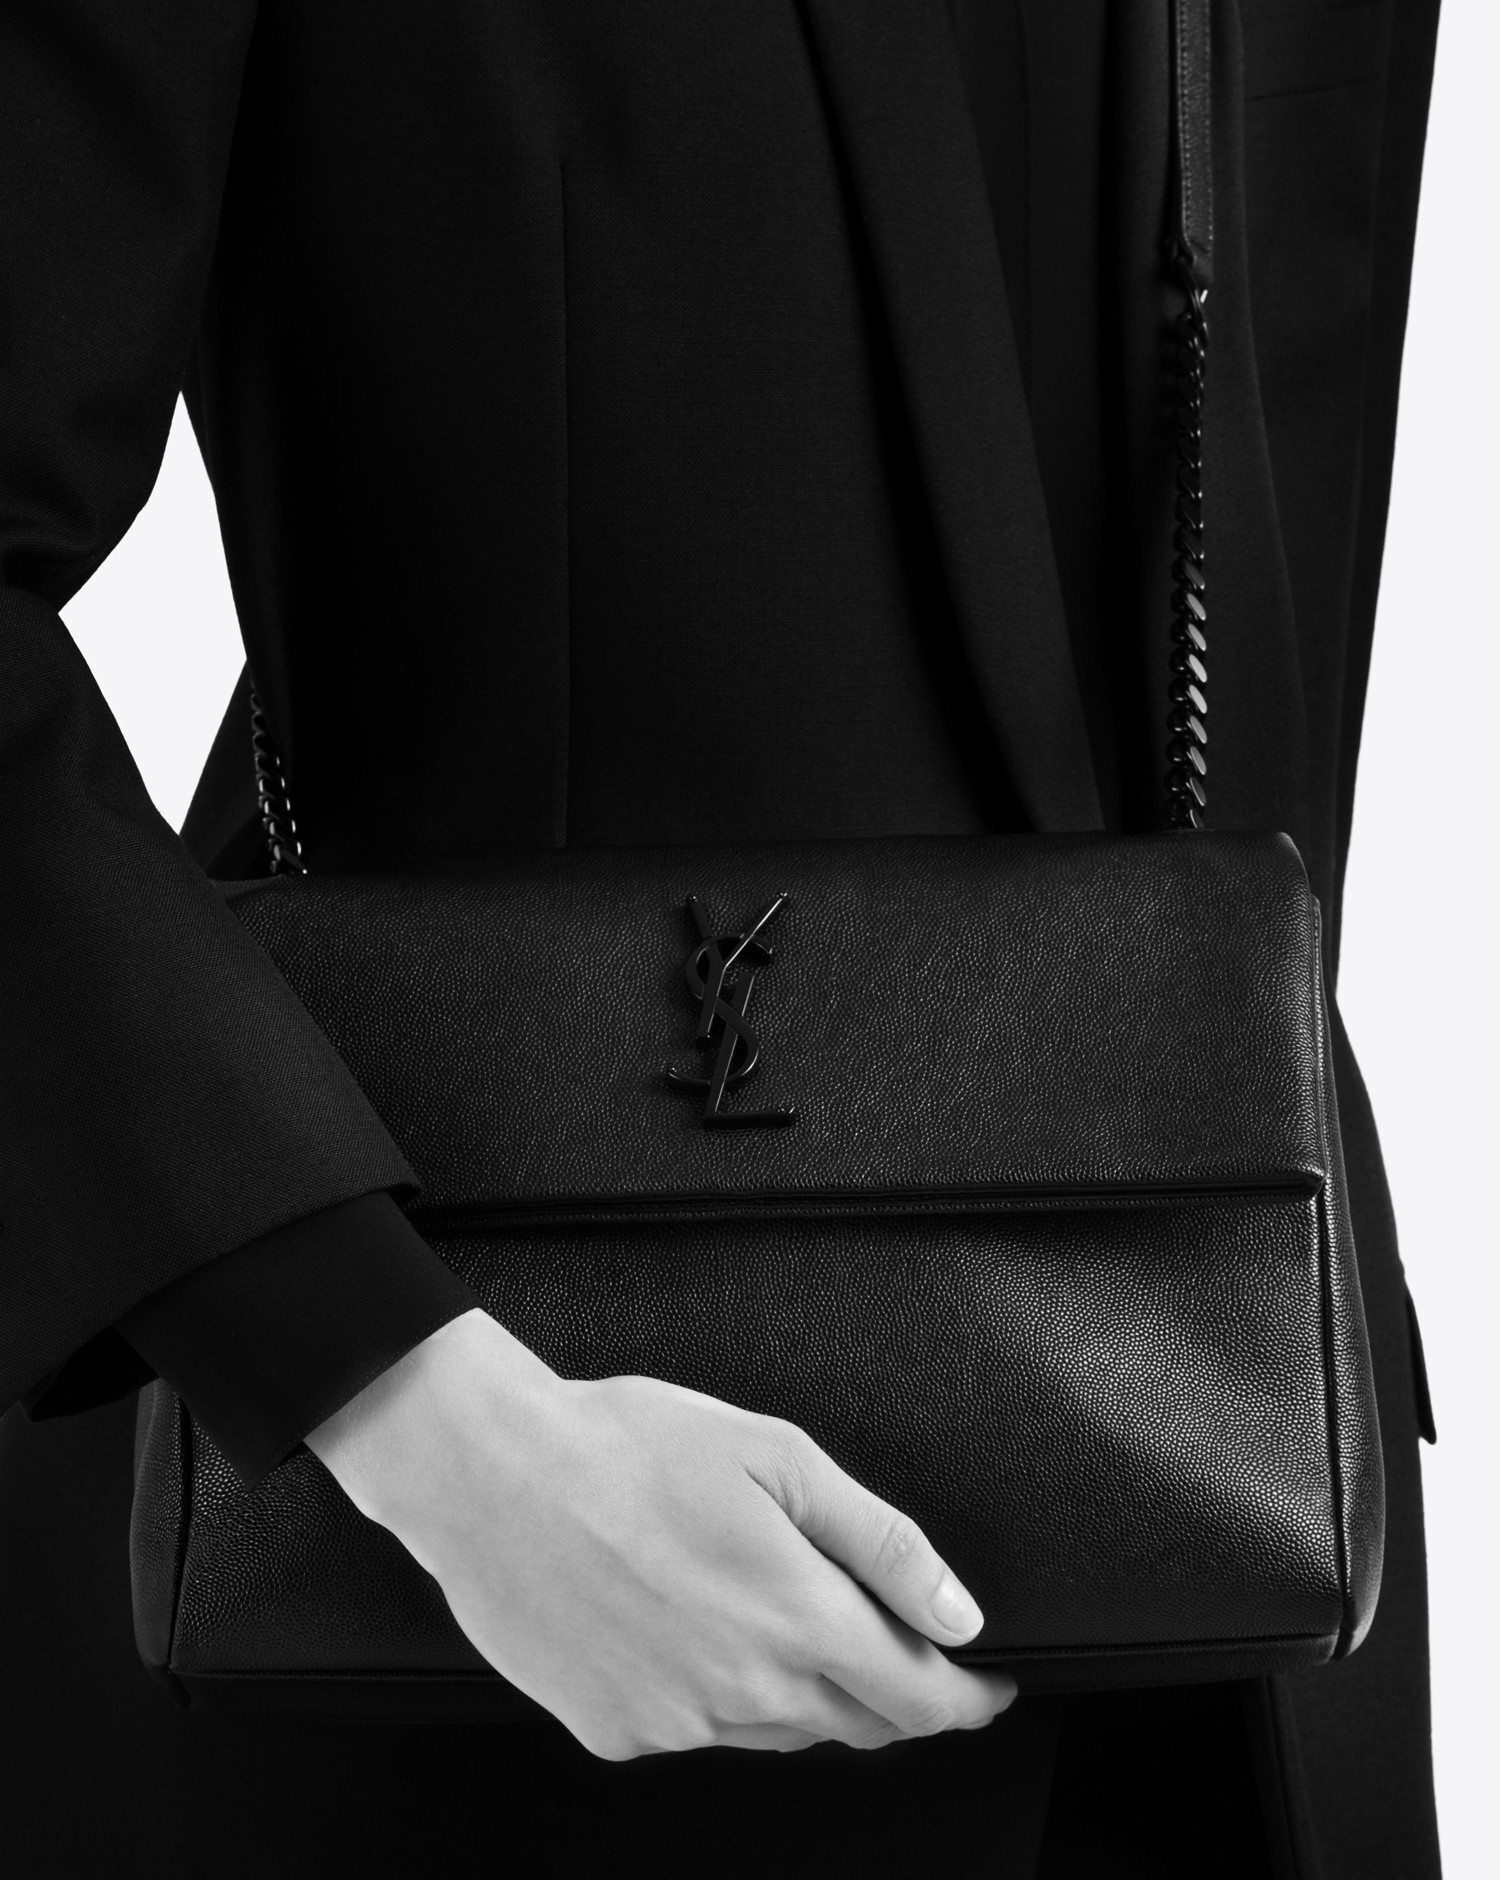 d304696f0d07 Lyst - Saint Laurent Medium West Hollywood Monogram Bag In Black ...